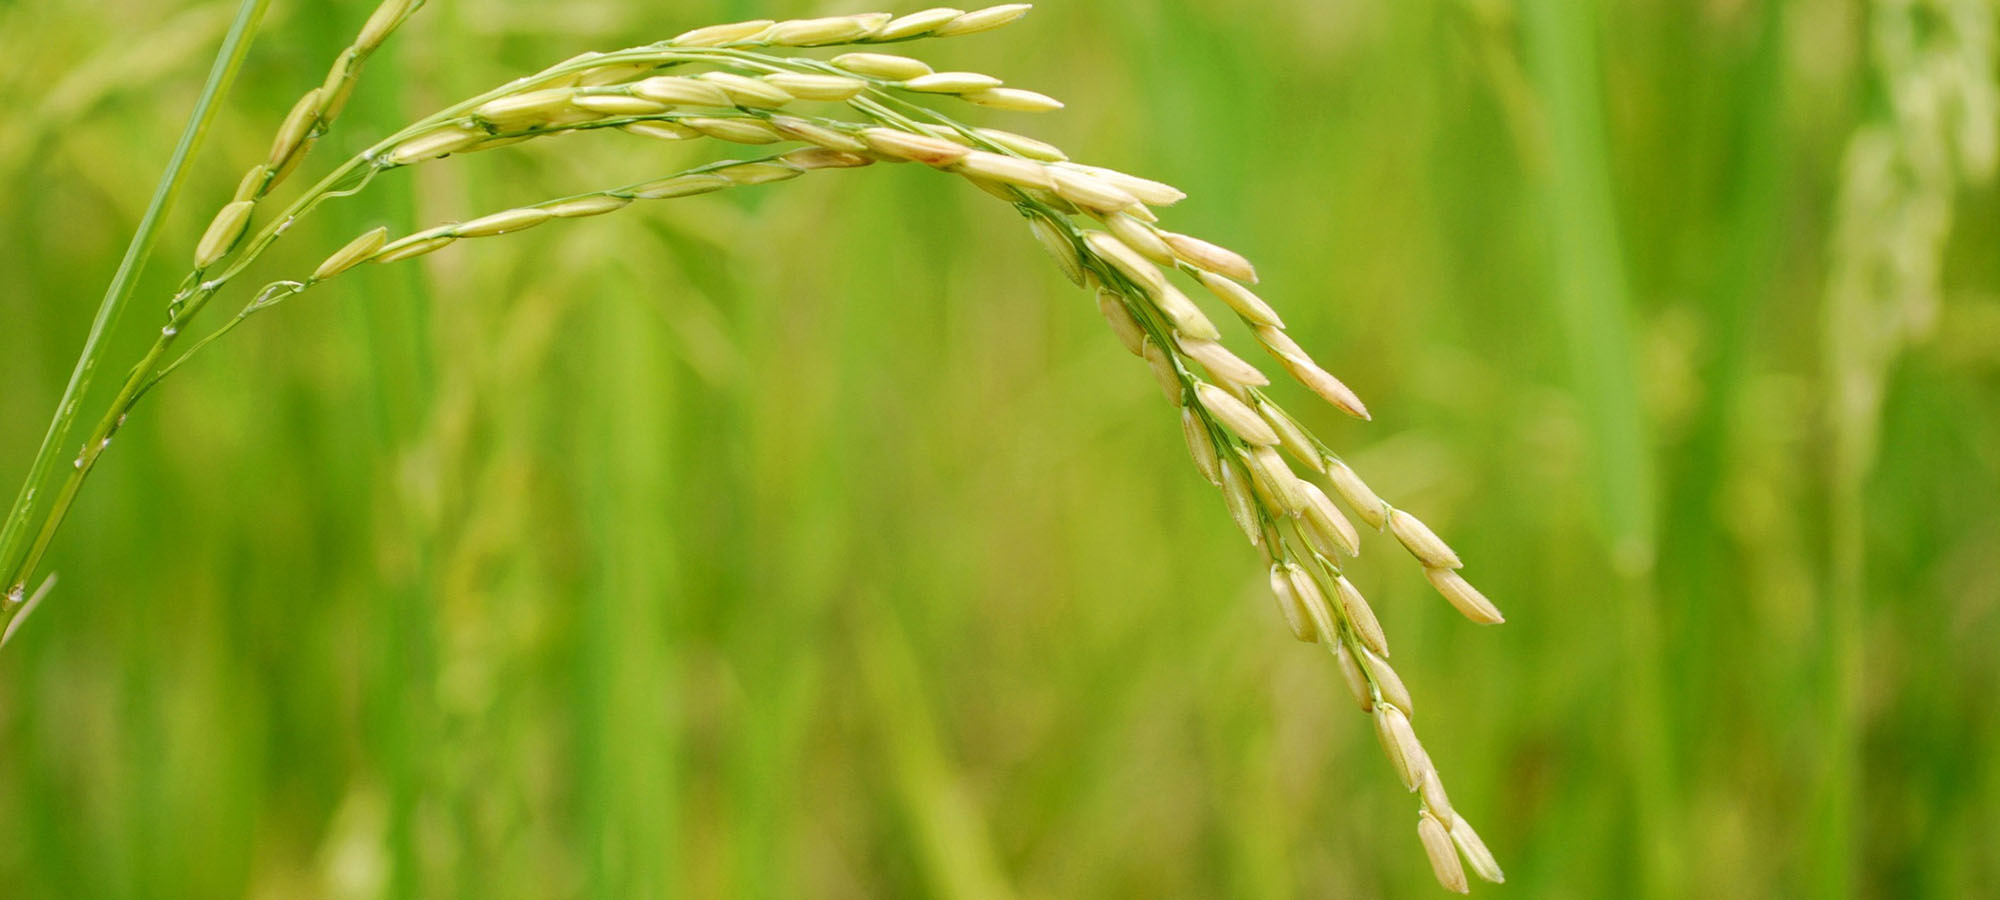 close up of one ear of a small grain crop